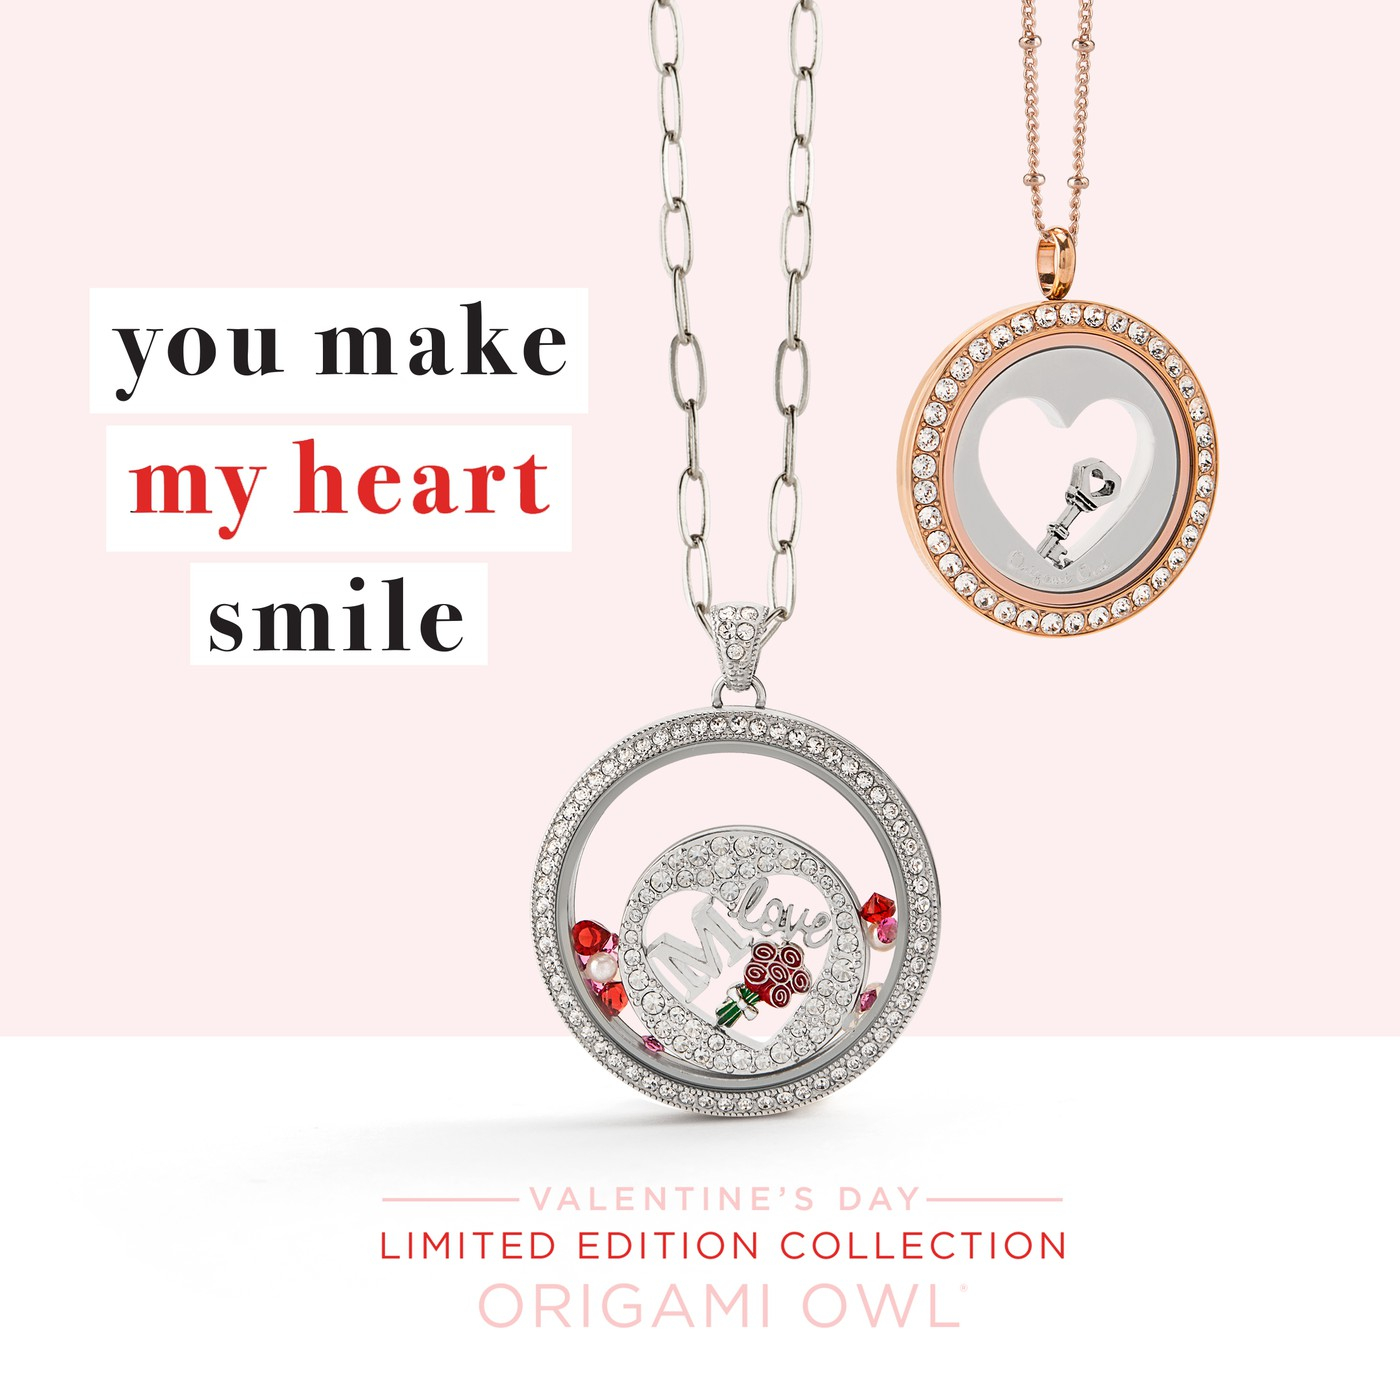 Origami Owl Over The Heart Chain Valentines Collection